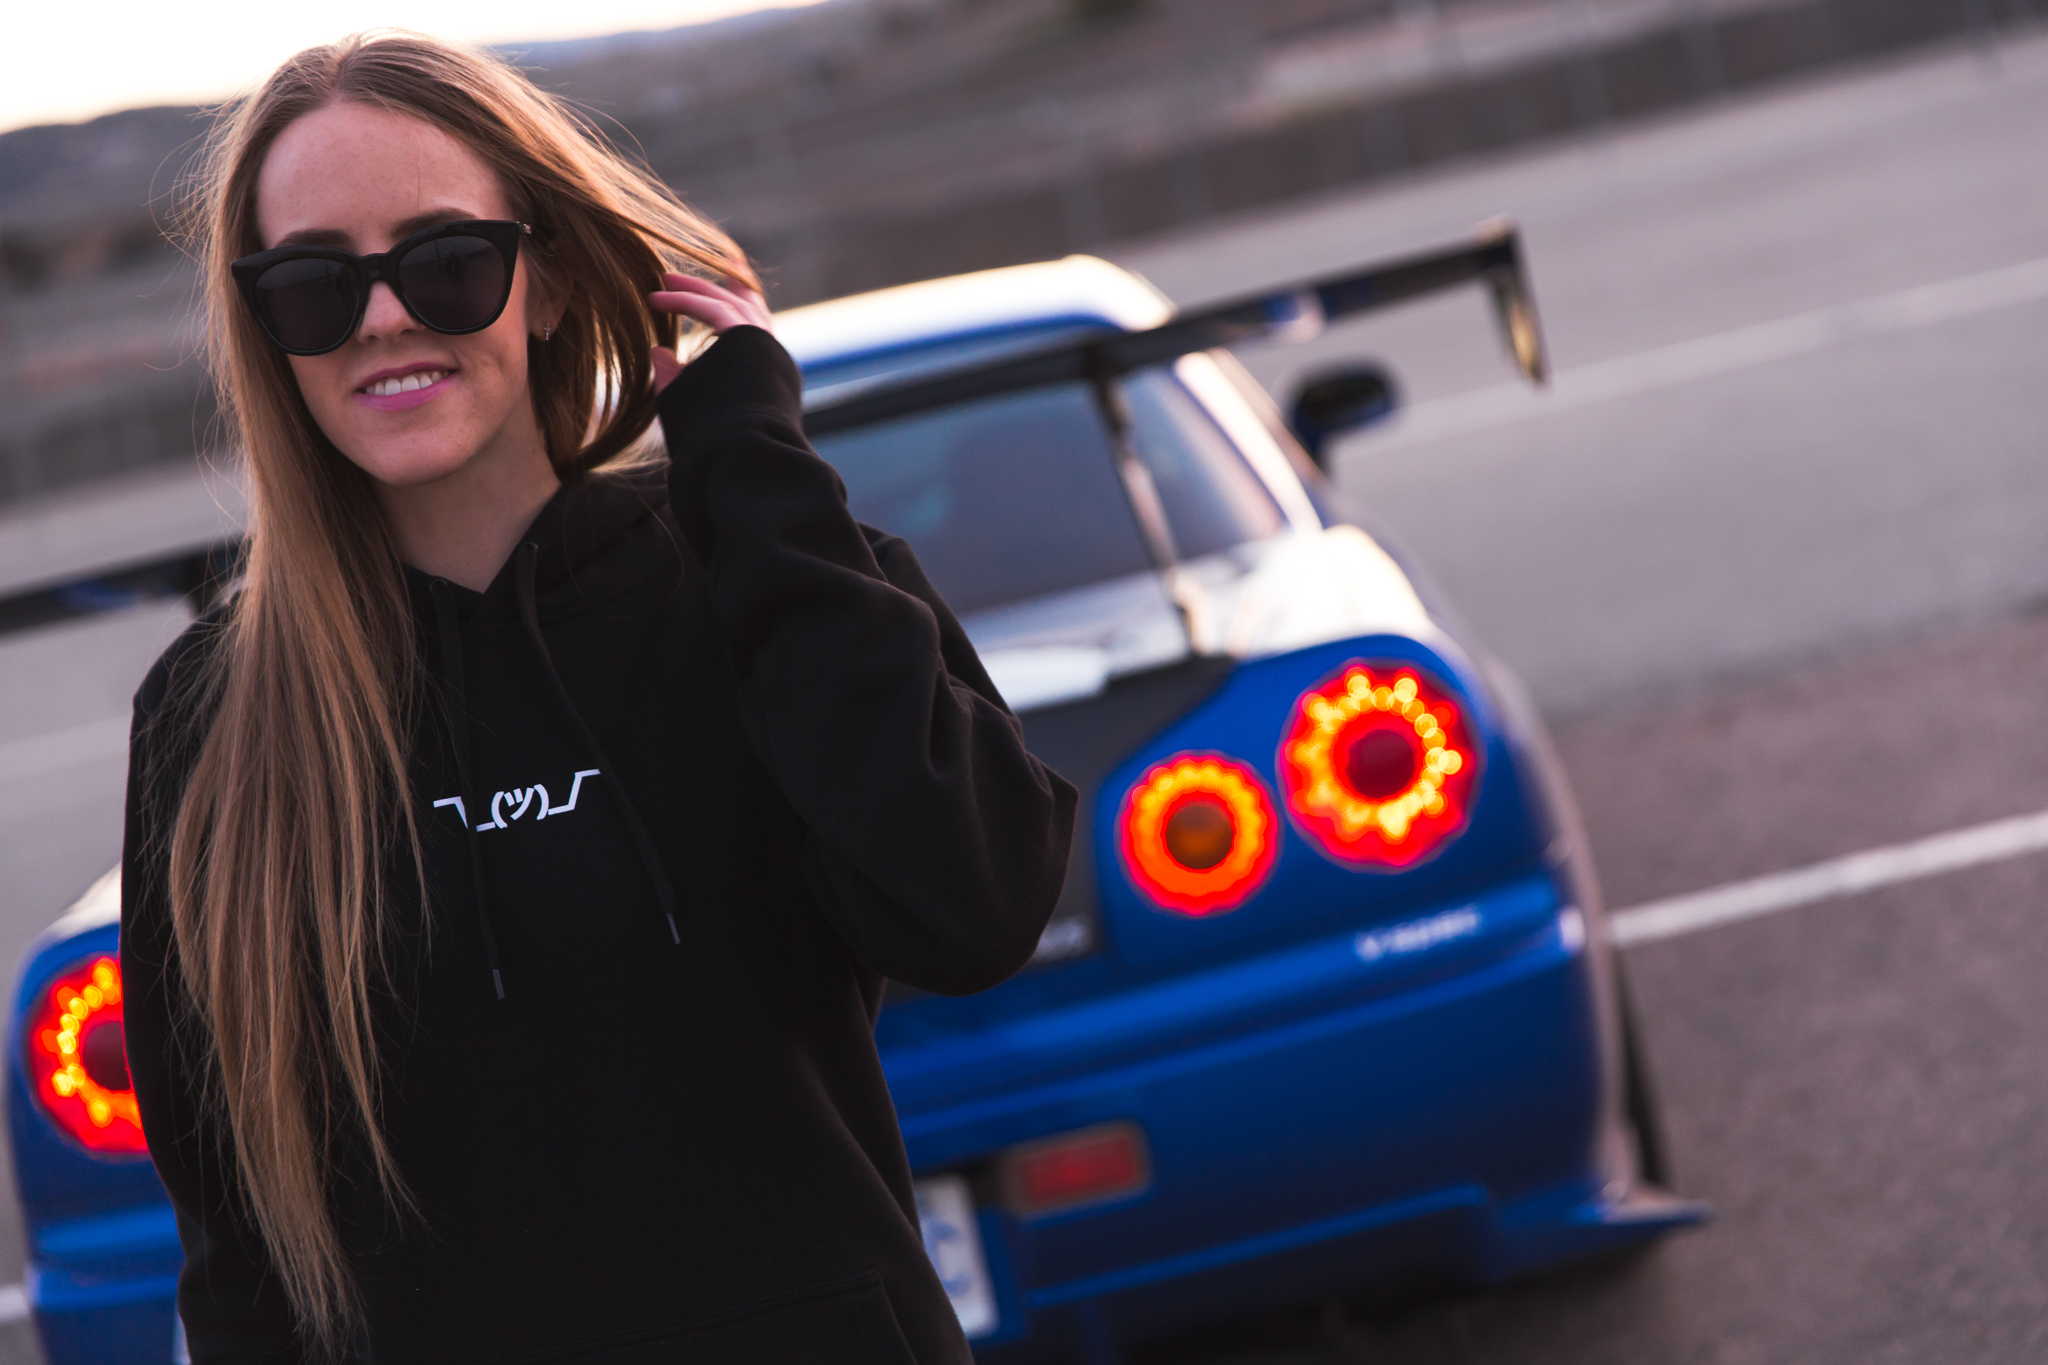 Stay_Driven_Rs_Day-160.jpg